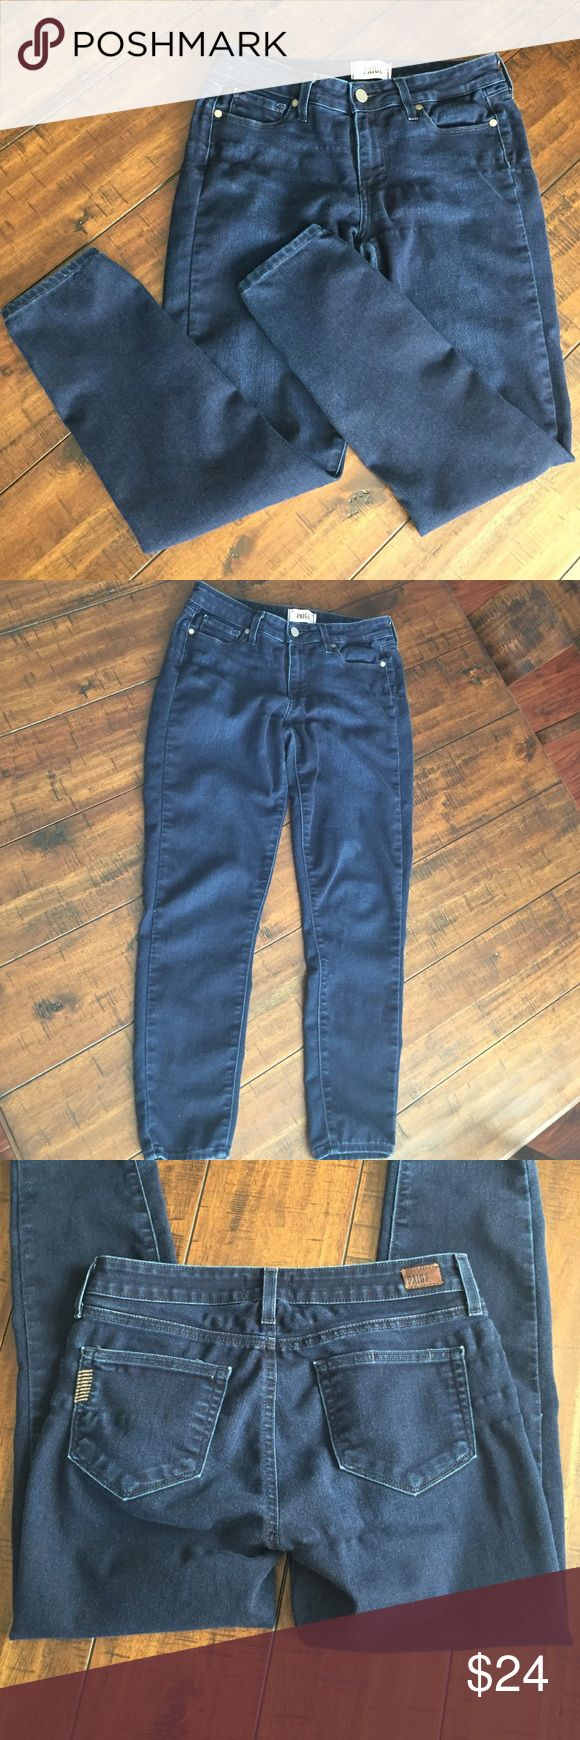 Paige Verdugo Ankle Paige Premium Denim skinnies. These are a little thinner material than standard jeans with a  77% cotton, 21% poly & 2% elastane blend.  They look great with boots or flats. Paige Jeans Jeans Skinny